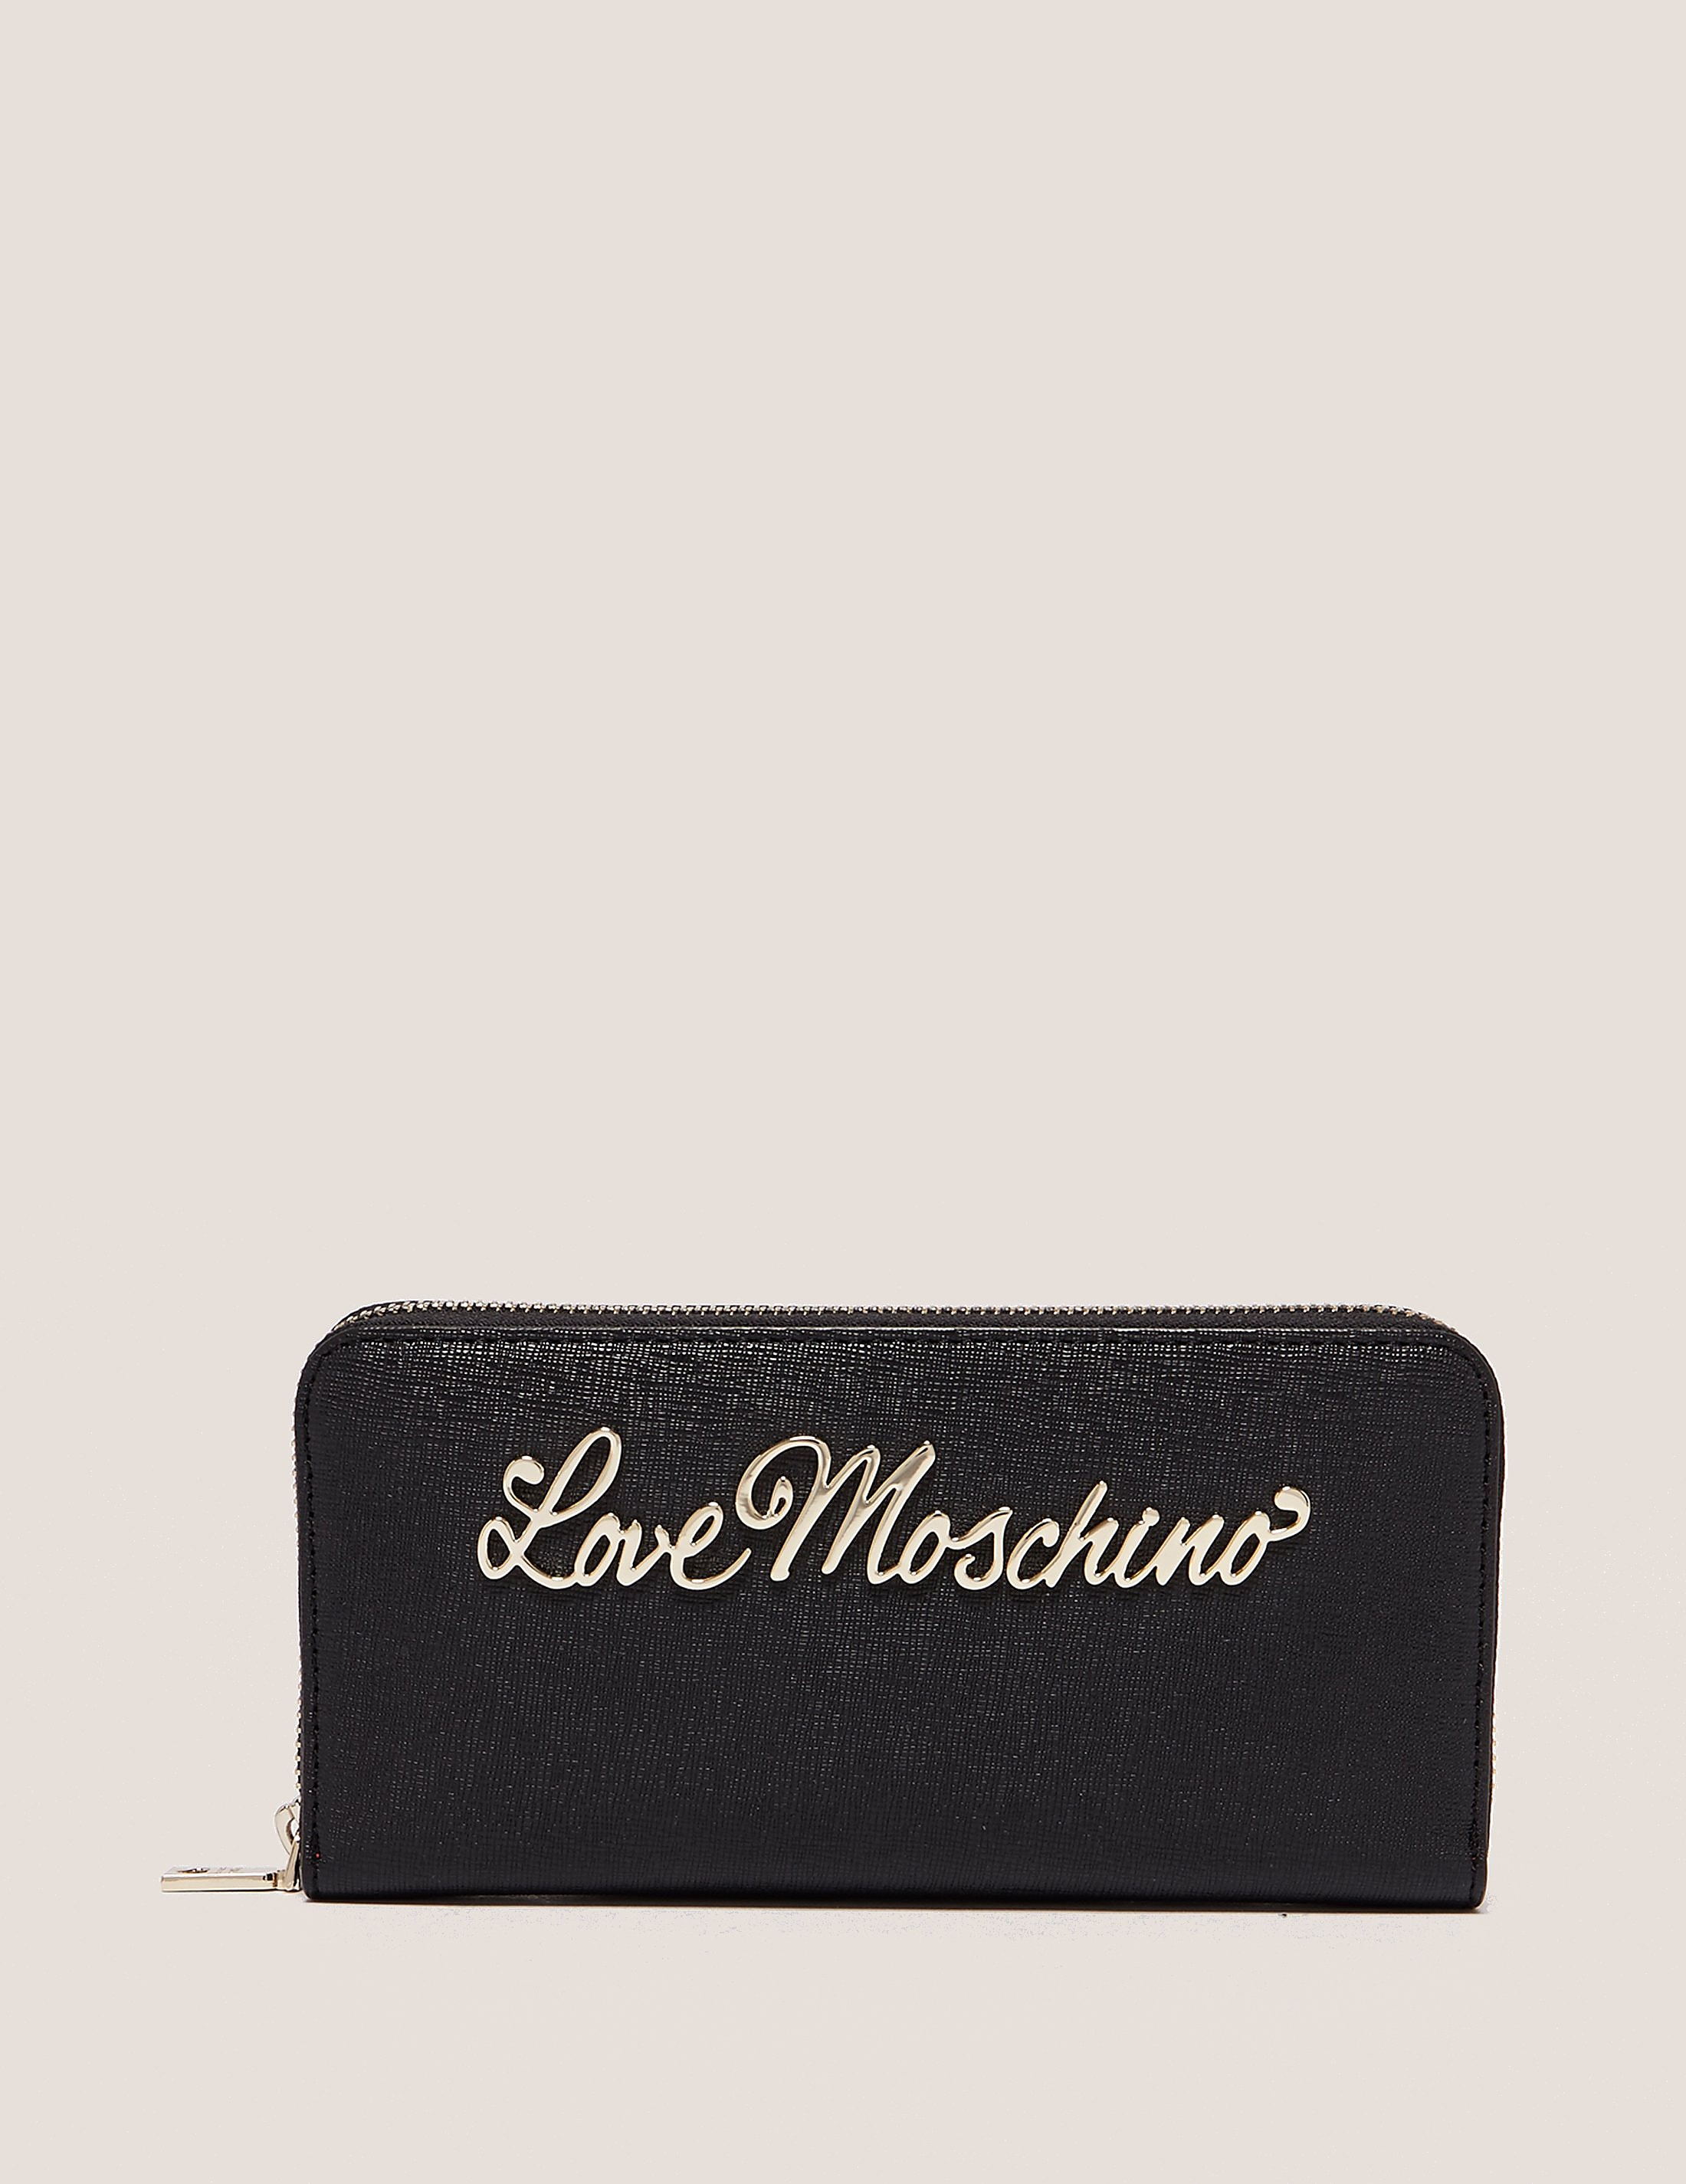 Love Moschino Branded Purse